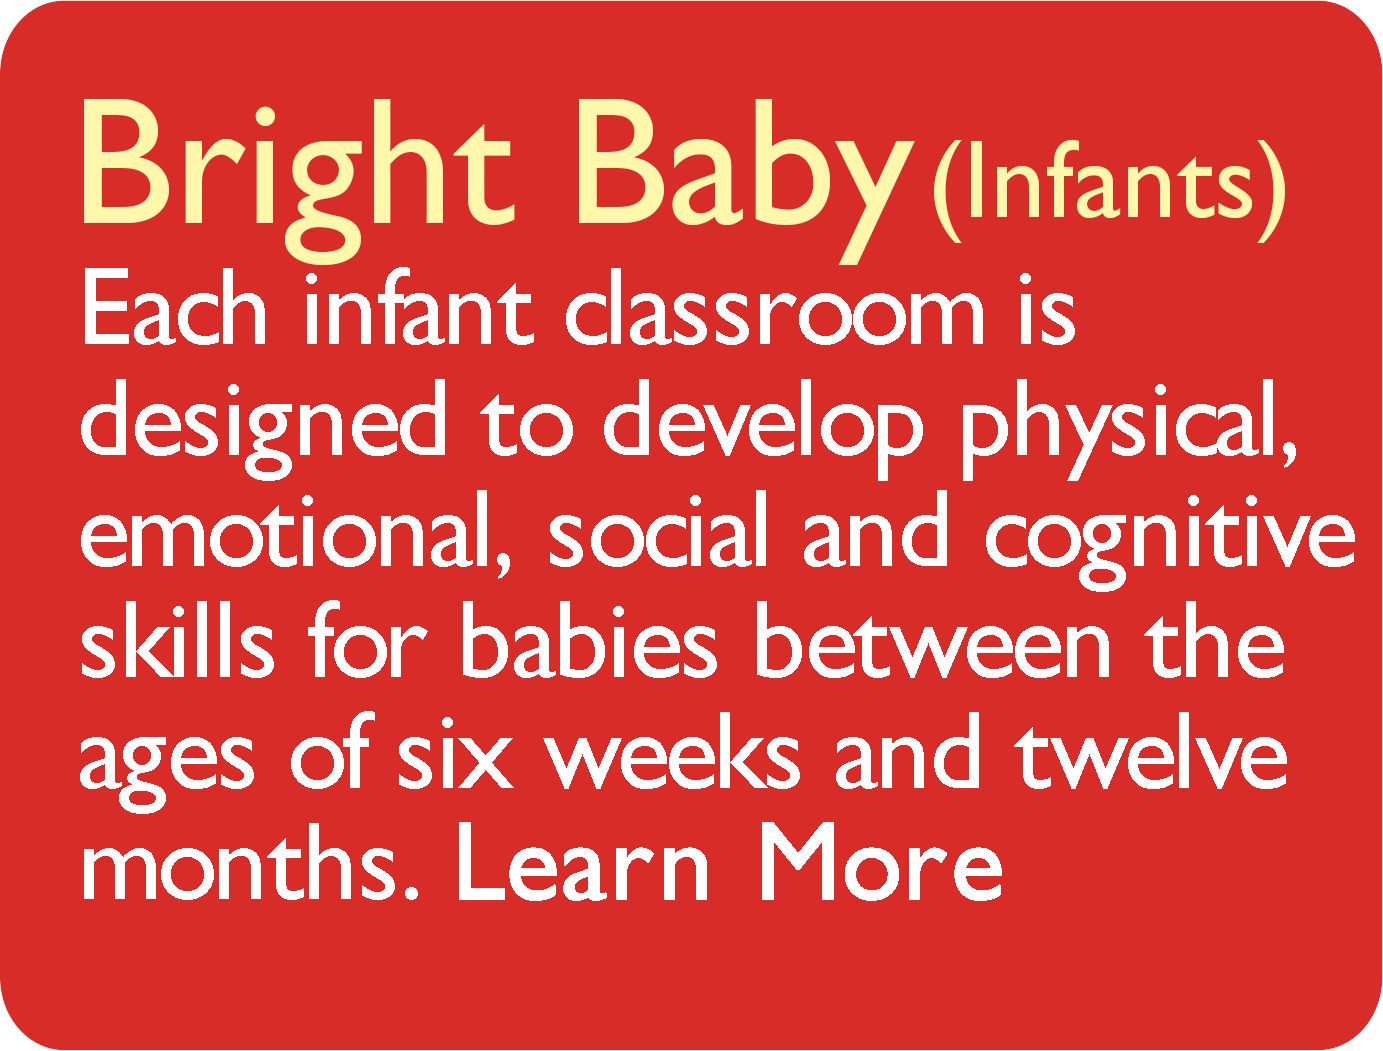 Bright Baby (Infants) Each infant classroom is designed to develop physical, emotional, social, and cognitive skills for babies between the ages of six weeks and twelve months. Learn More.